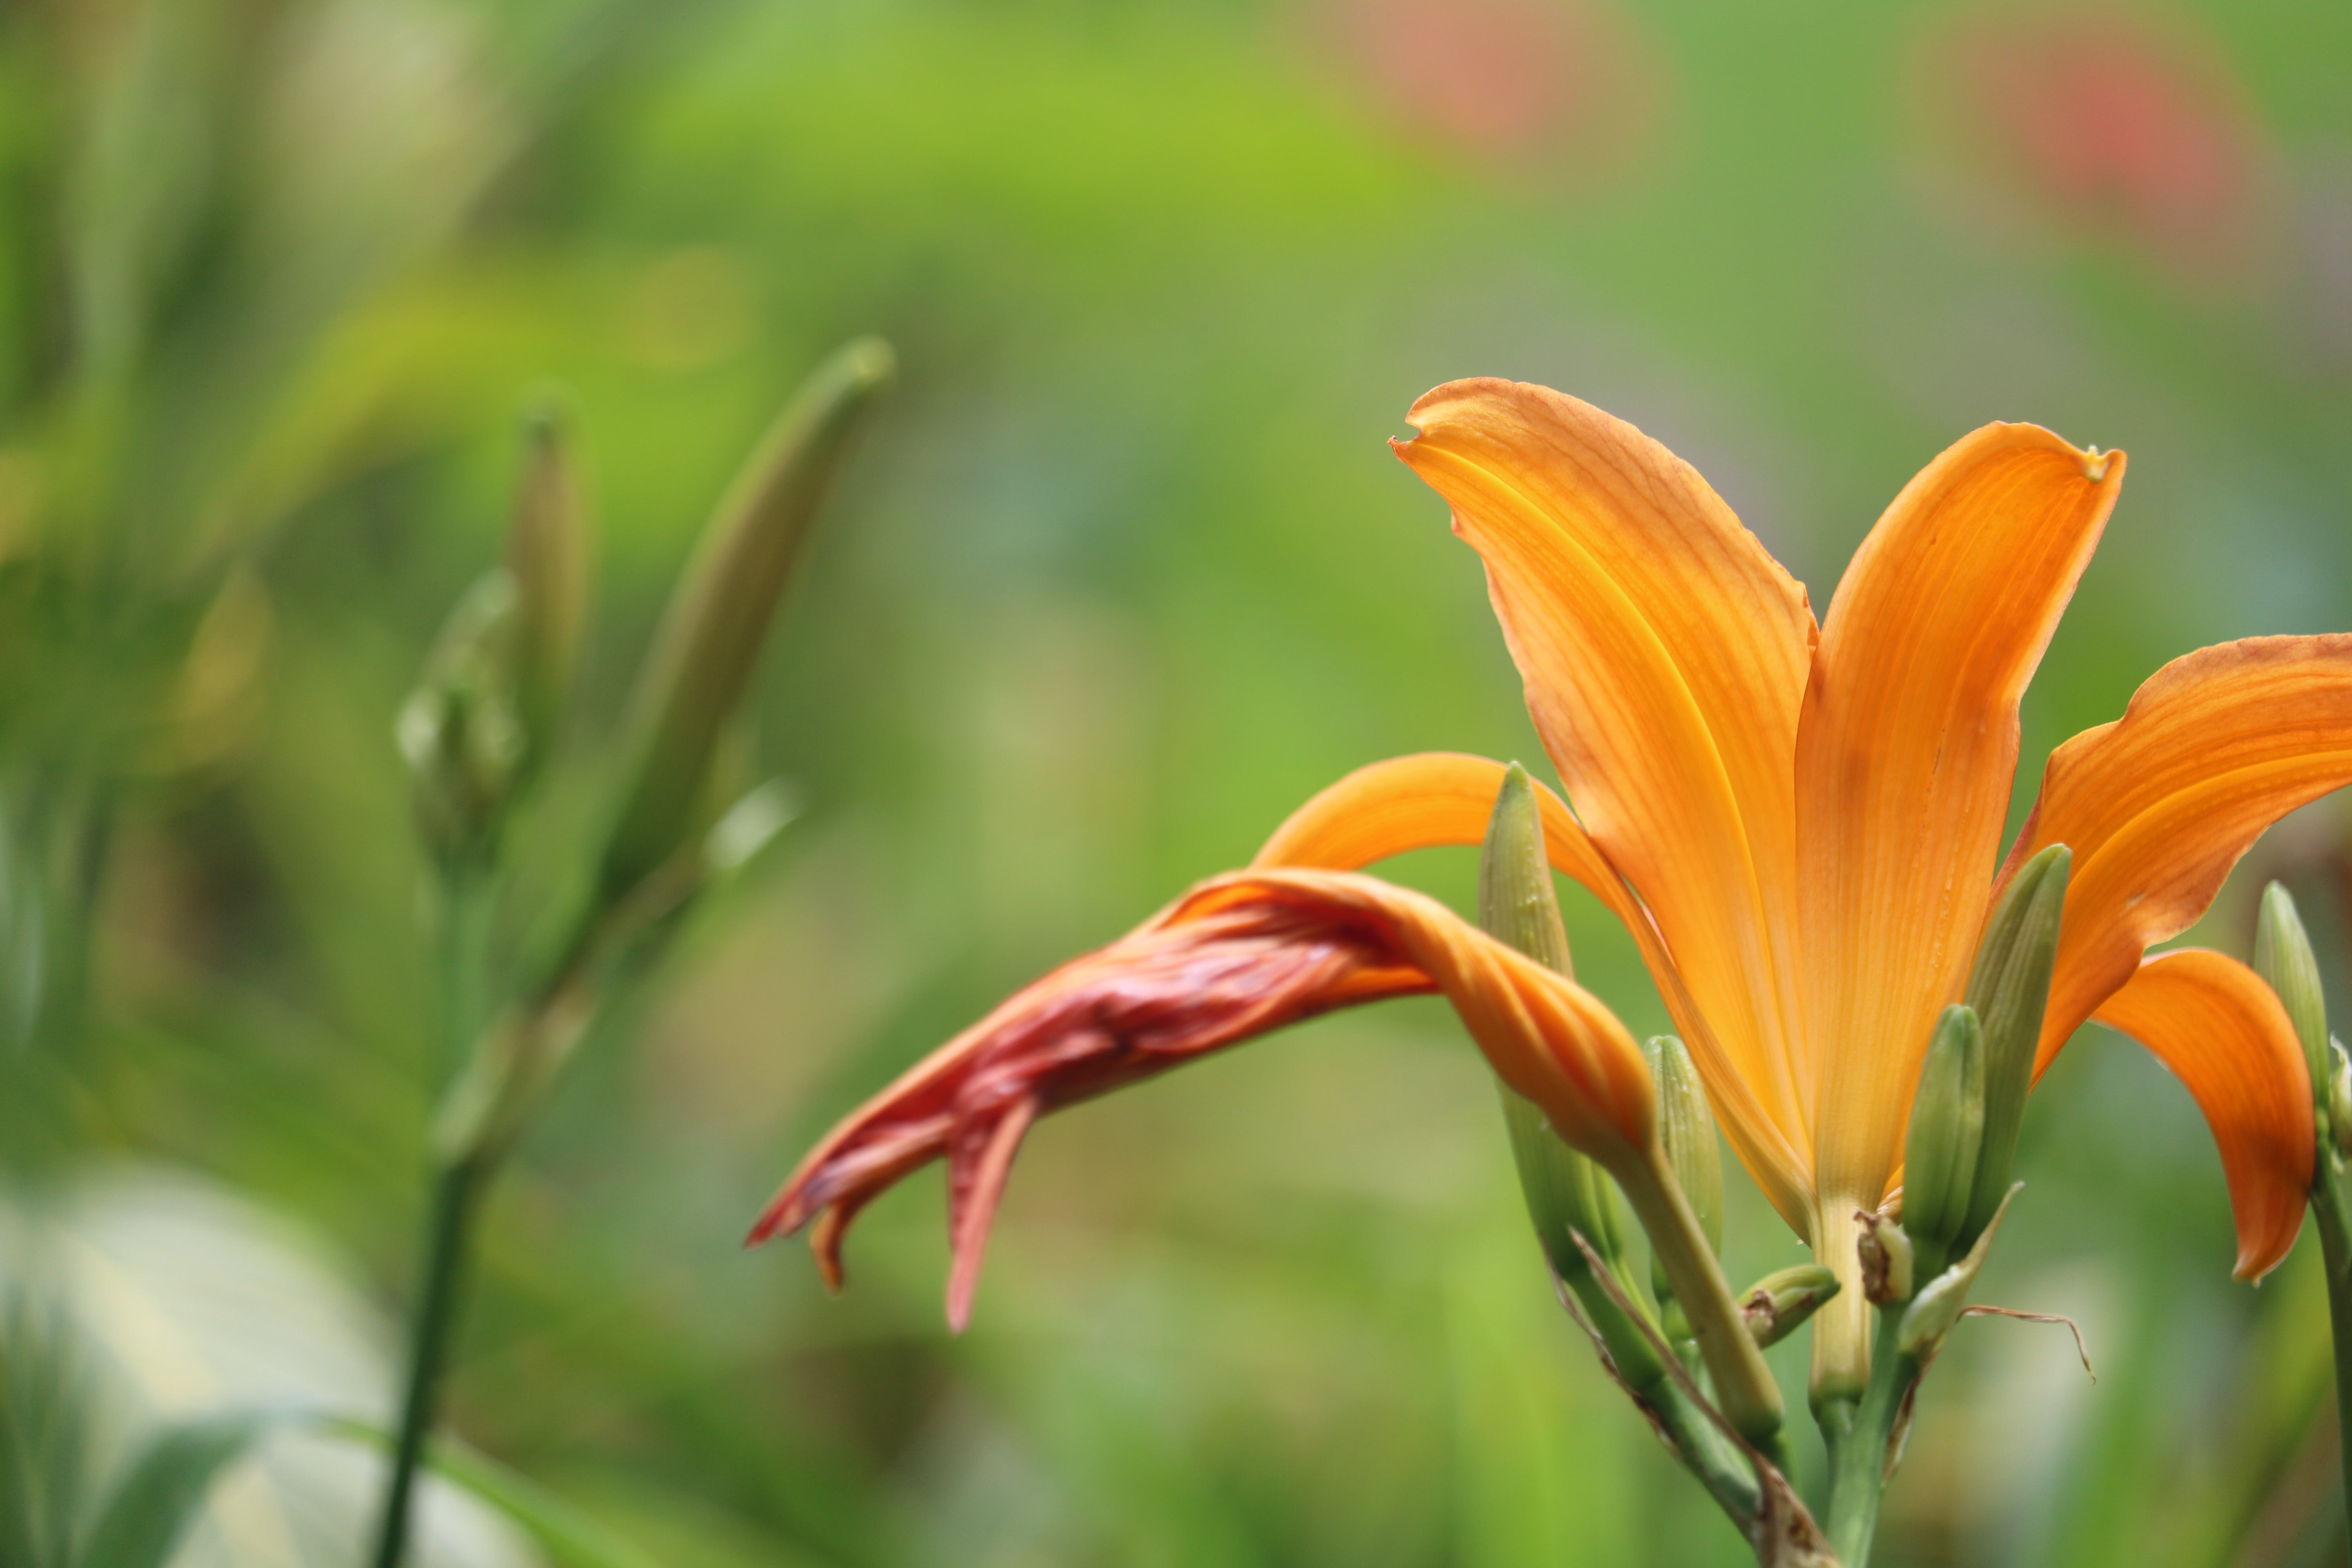 Close-up Photo of Orange Petal Flower